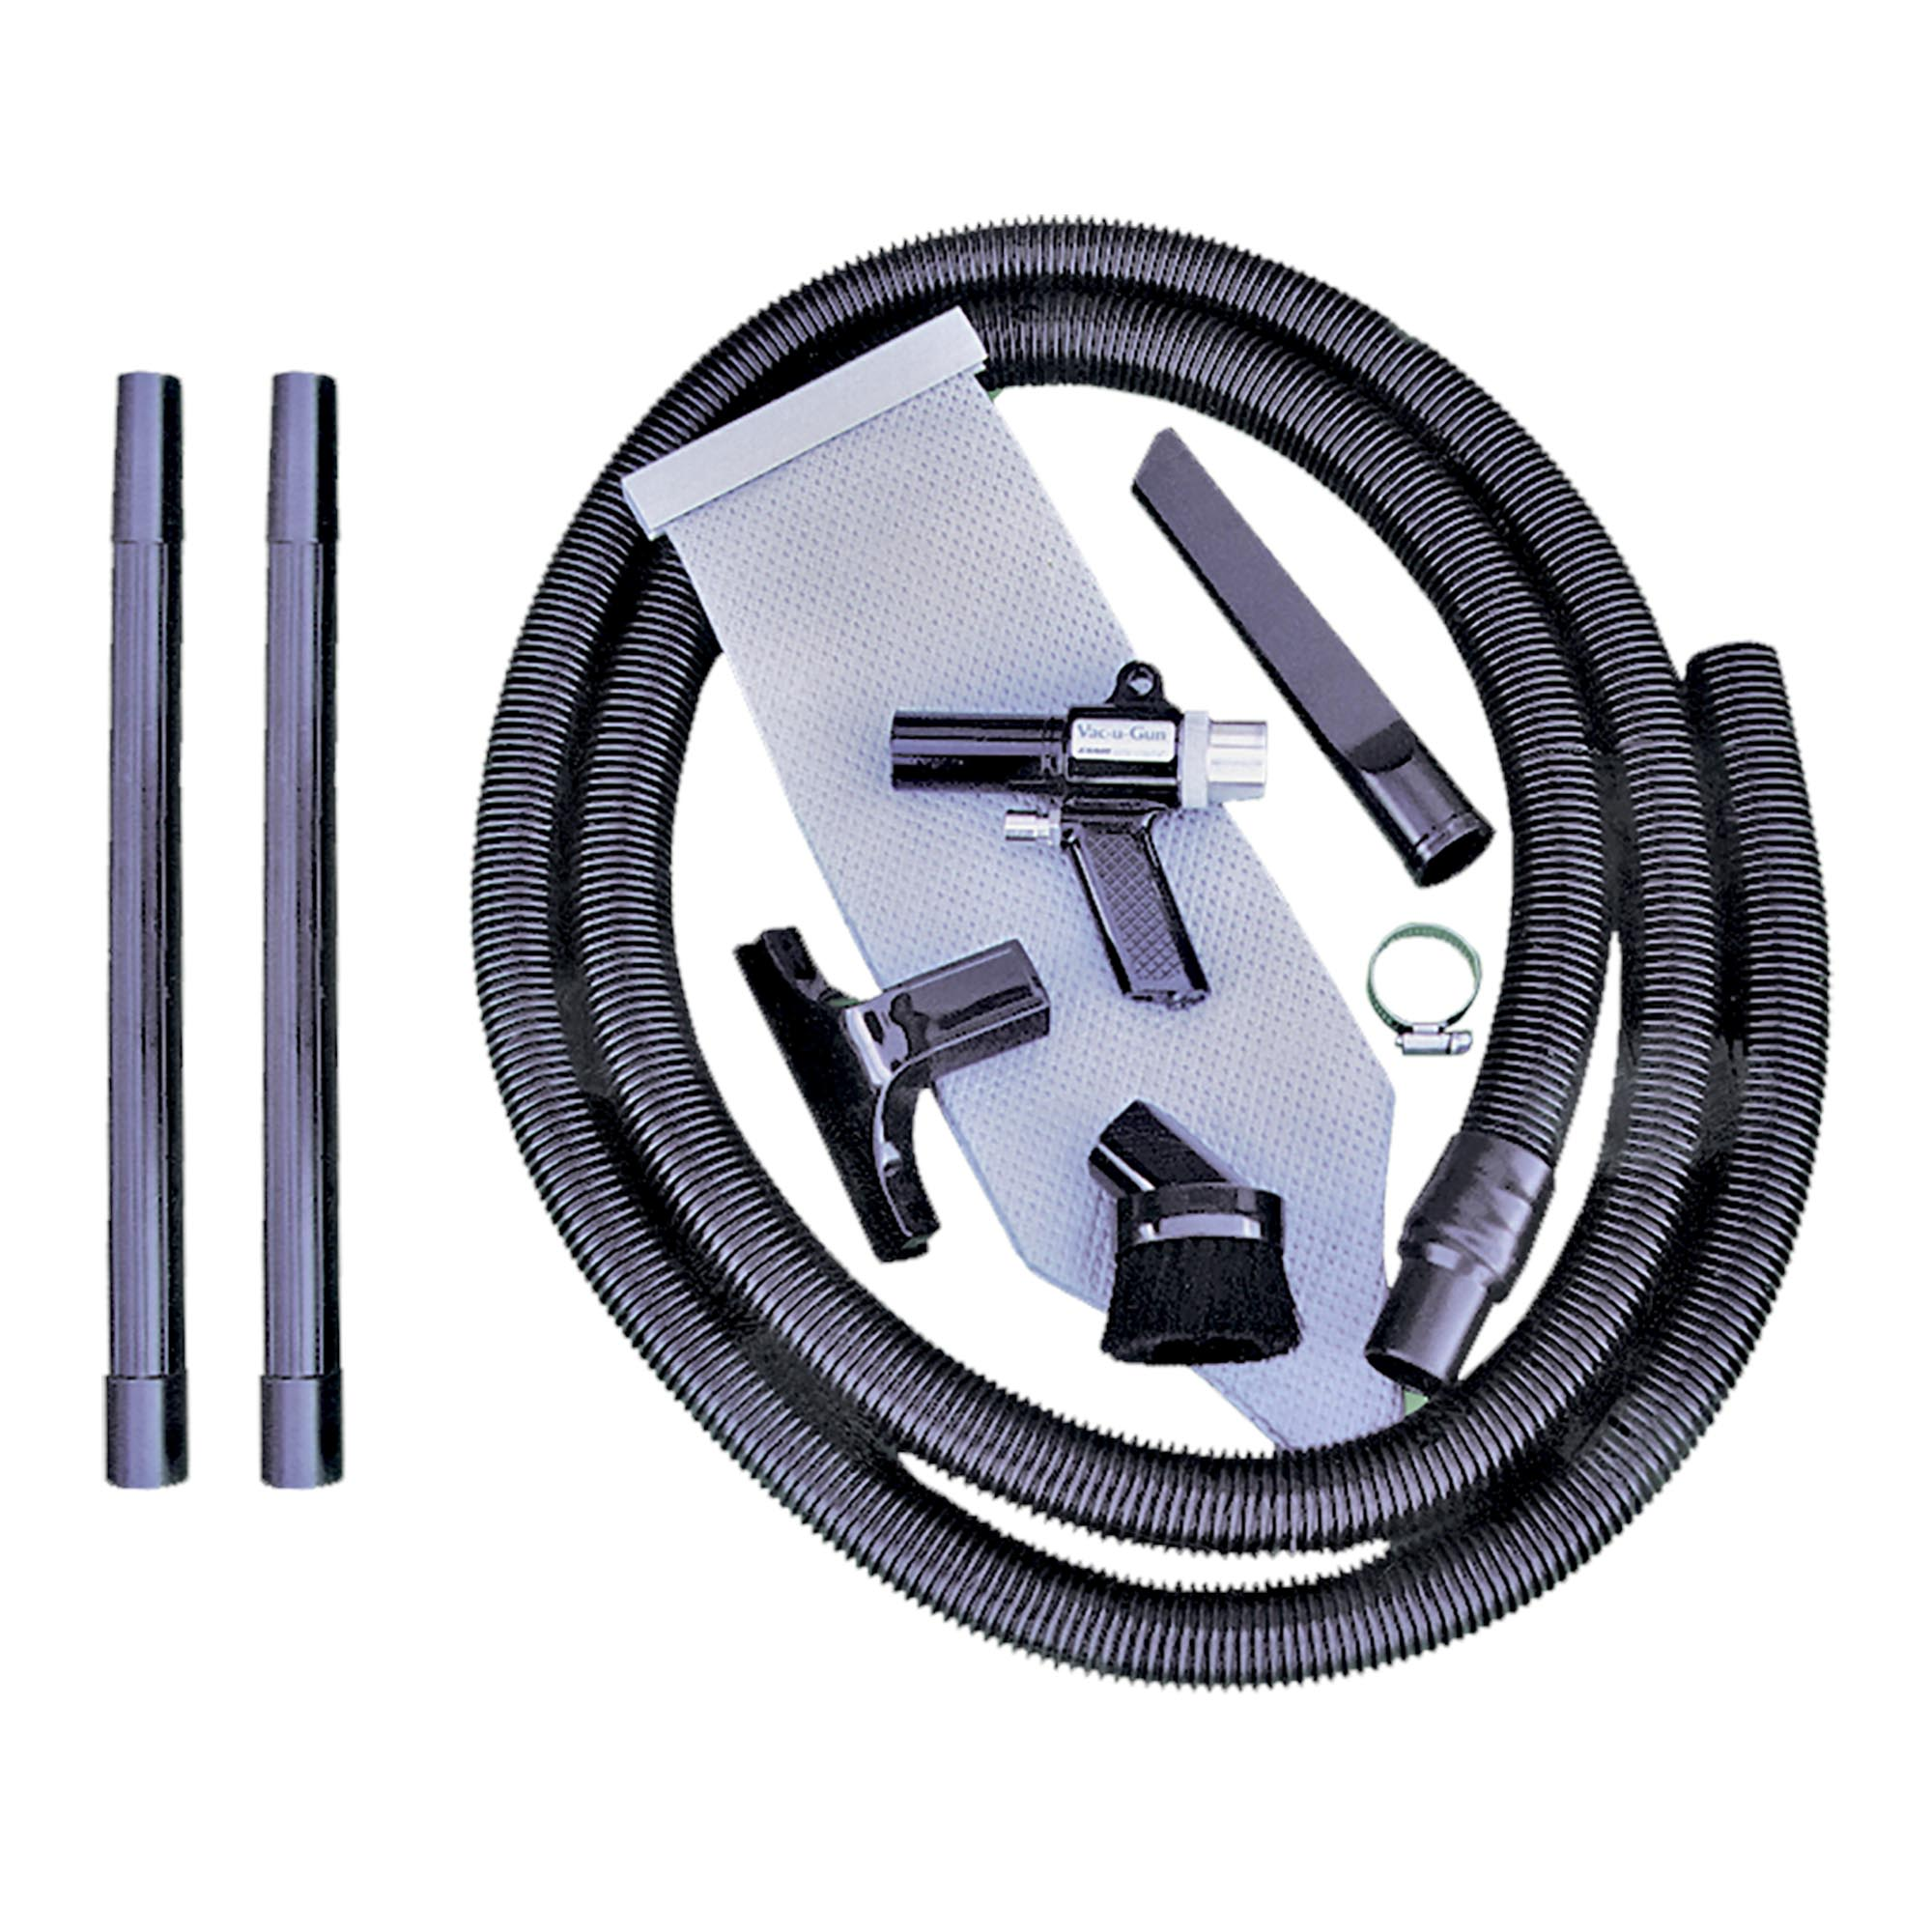 Model 6392 All Purpose System includes the 10' vacuum hose and reusable vacuum bag with all of the attachments.